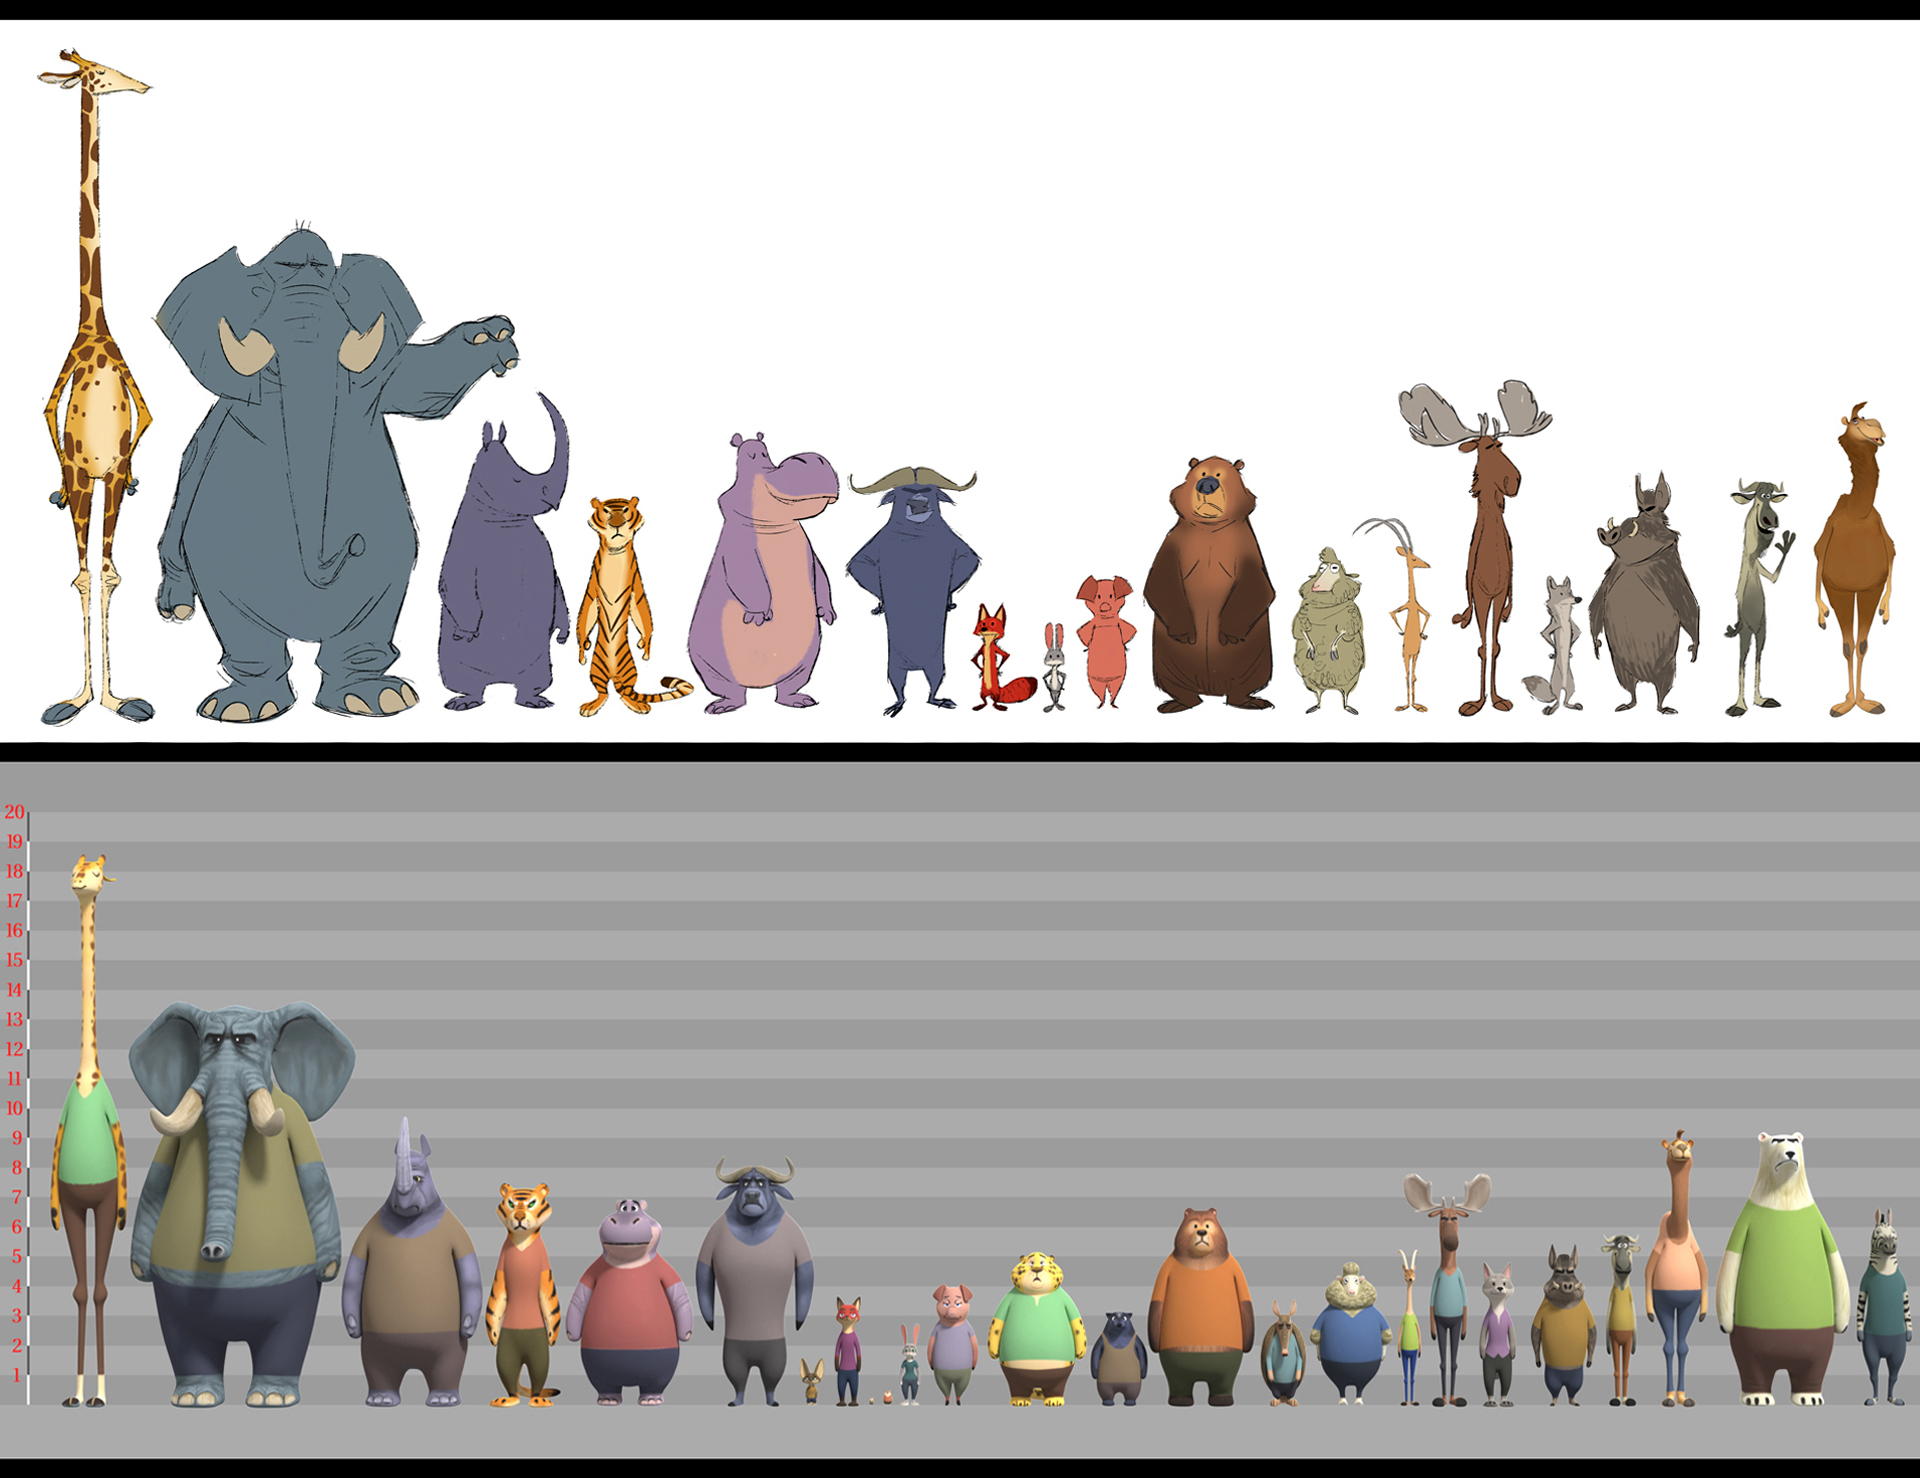 disneyzootopia art director of characters cory loftis talks creating zootopia animals and. Black Bedroom Furniture Sets. Home Design Ideas